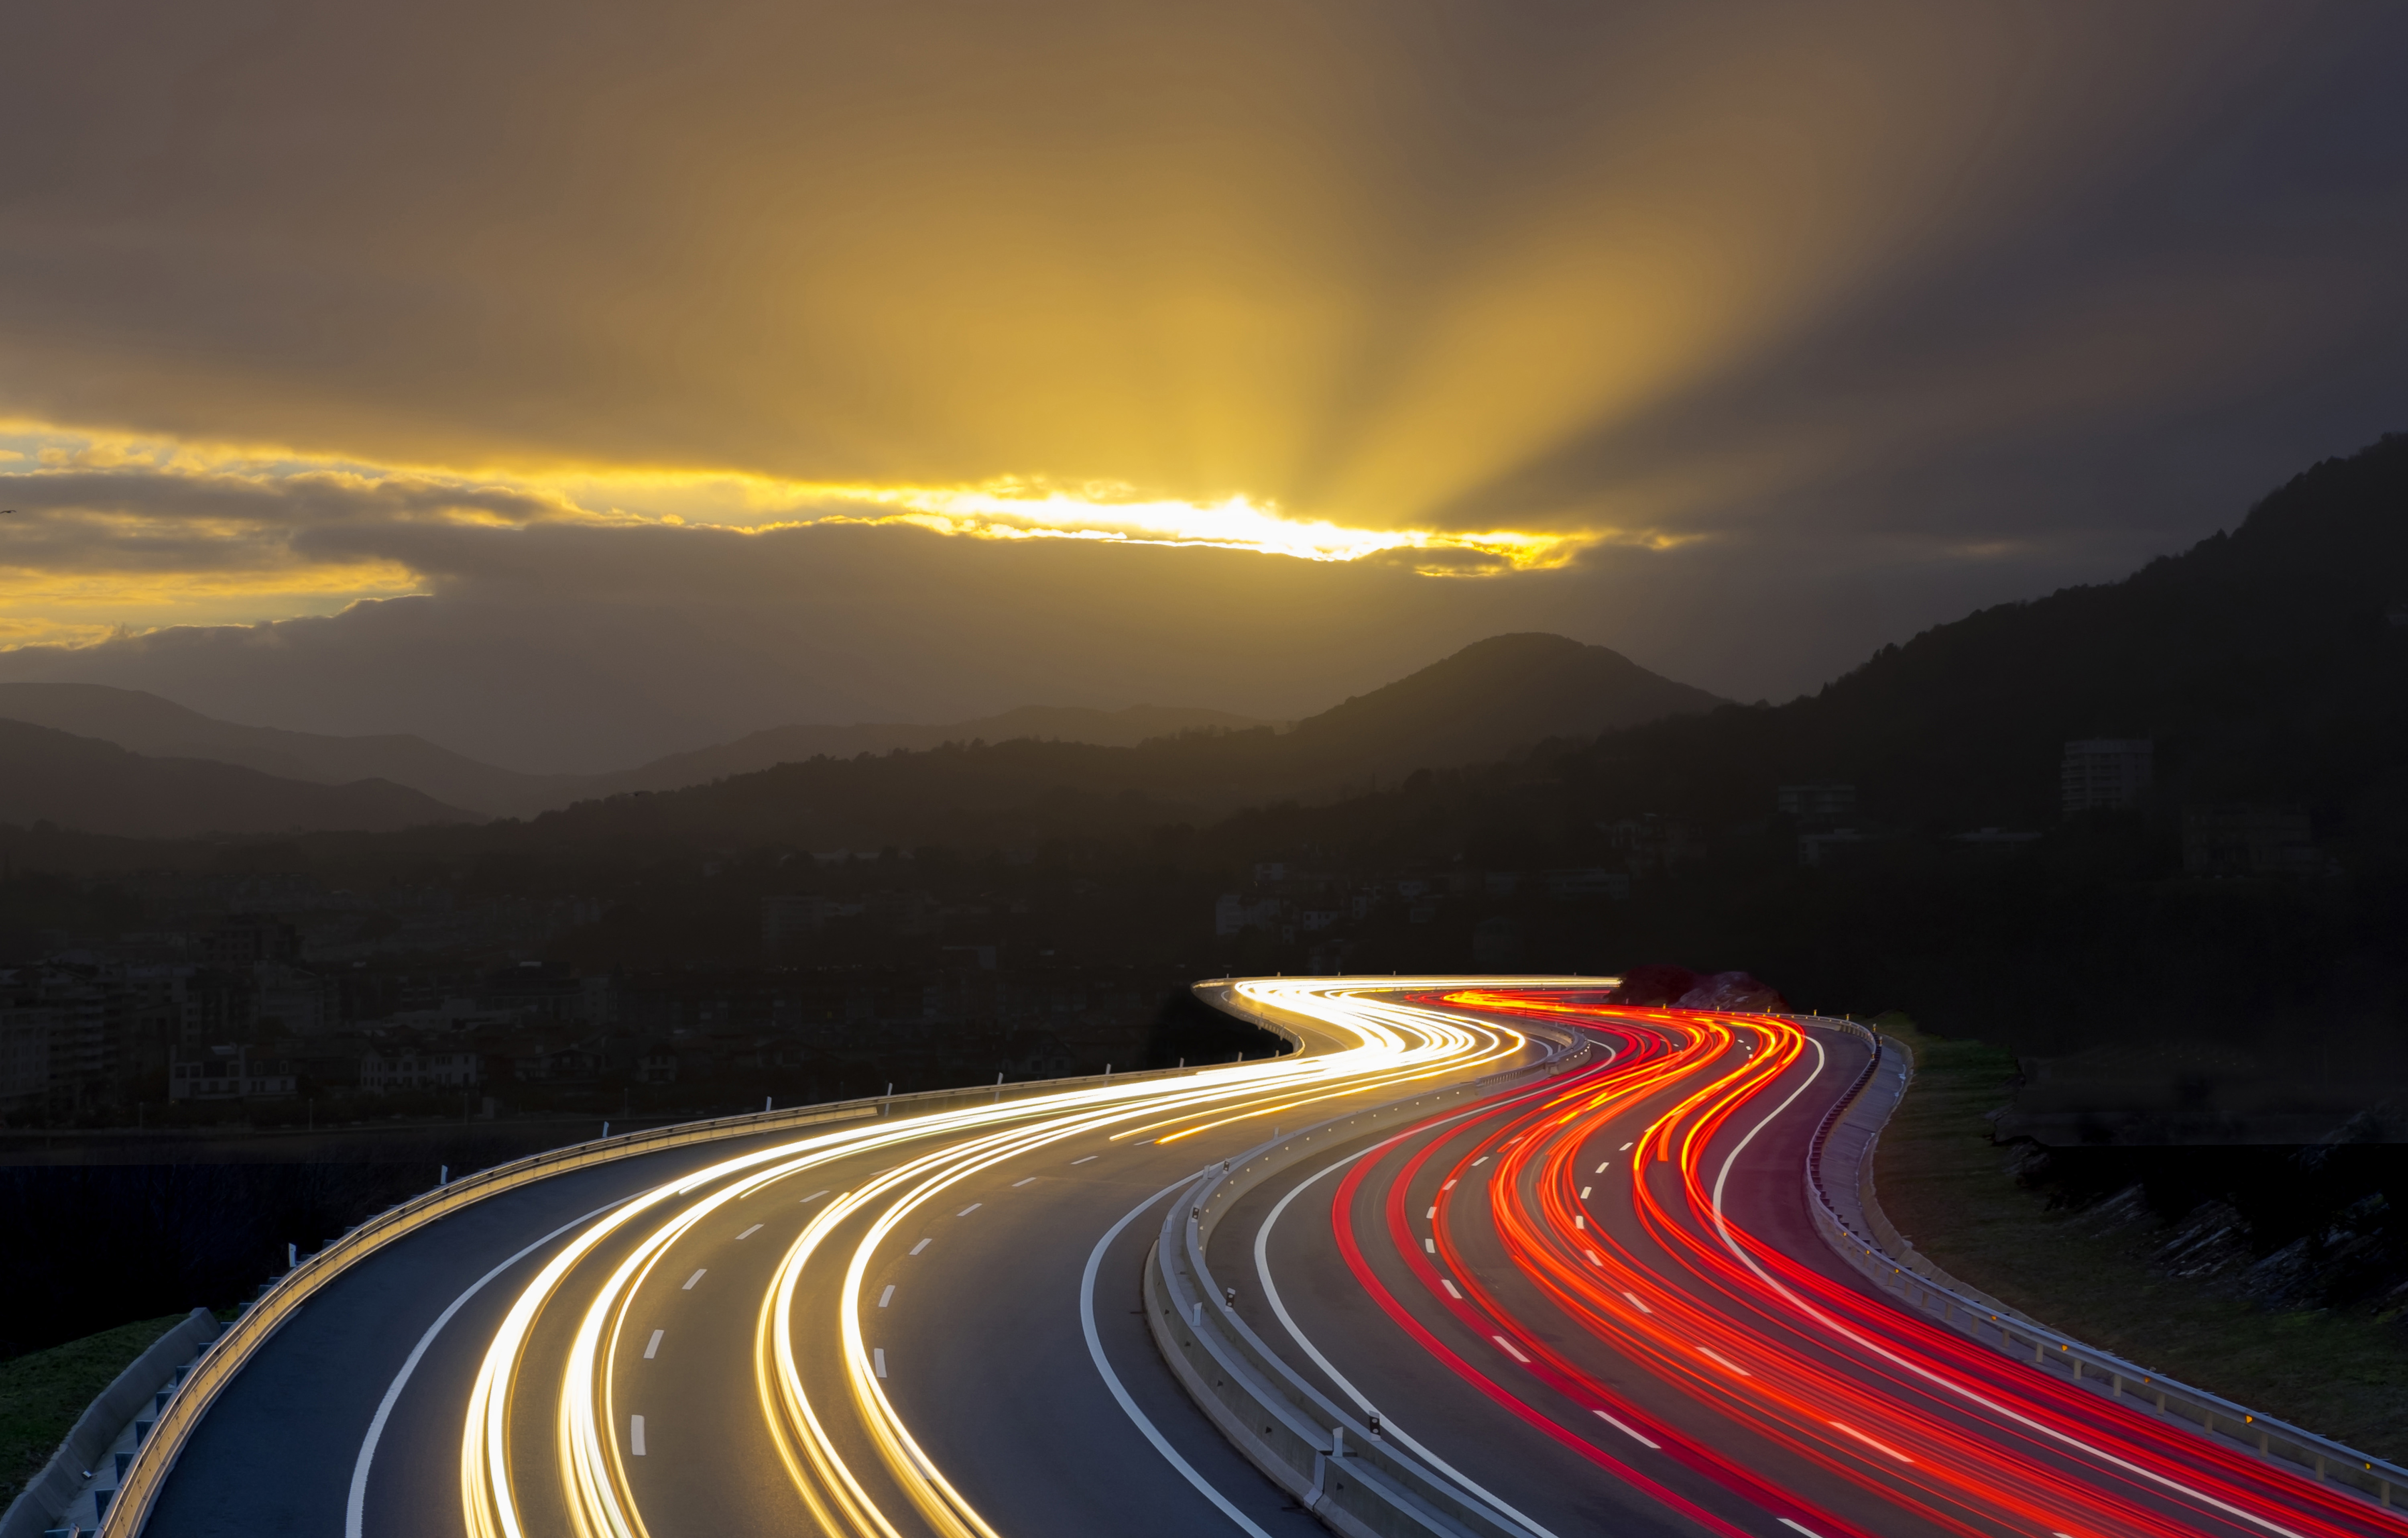 91825 Screensavers and Wallpapers Glow for phone. Download Cities, Mountains, Night, Road, Turn, Glow pictures for free